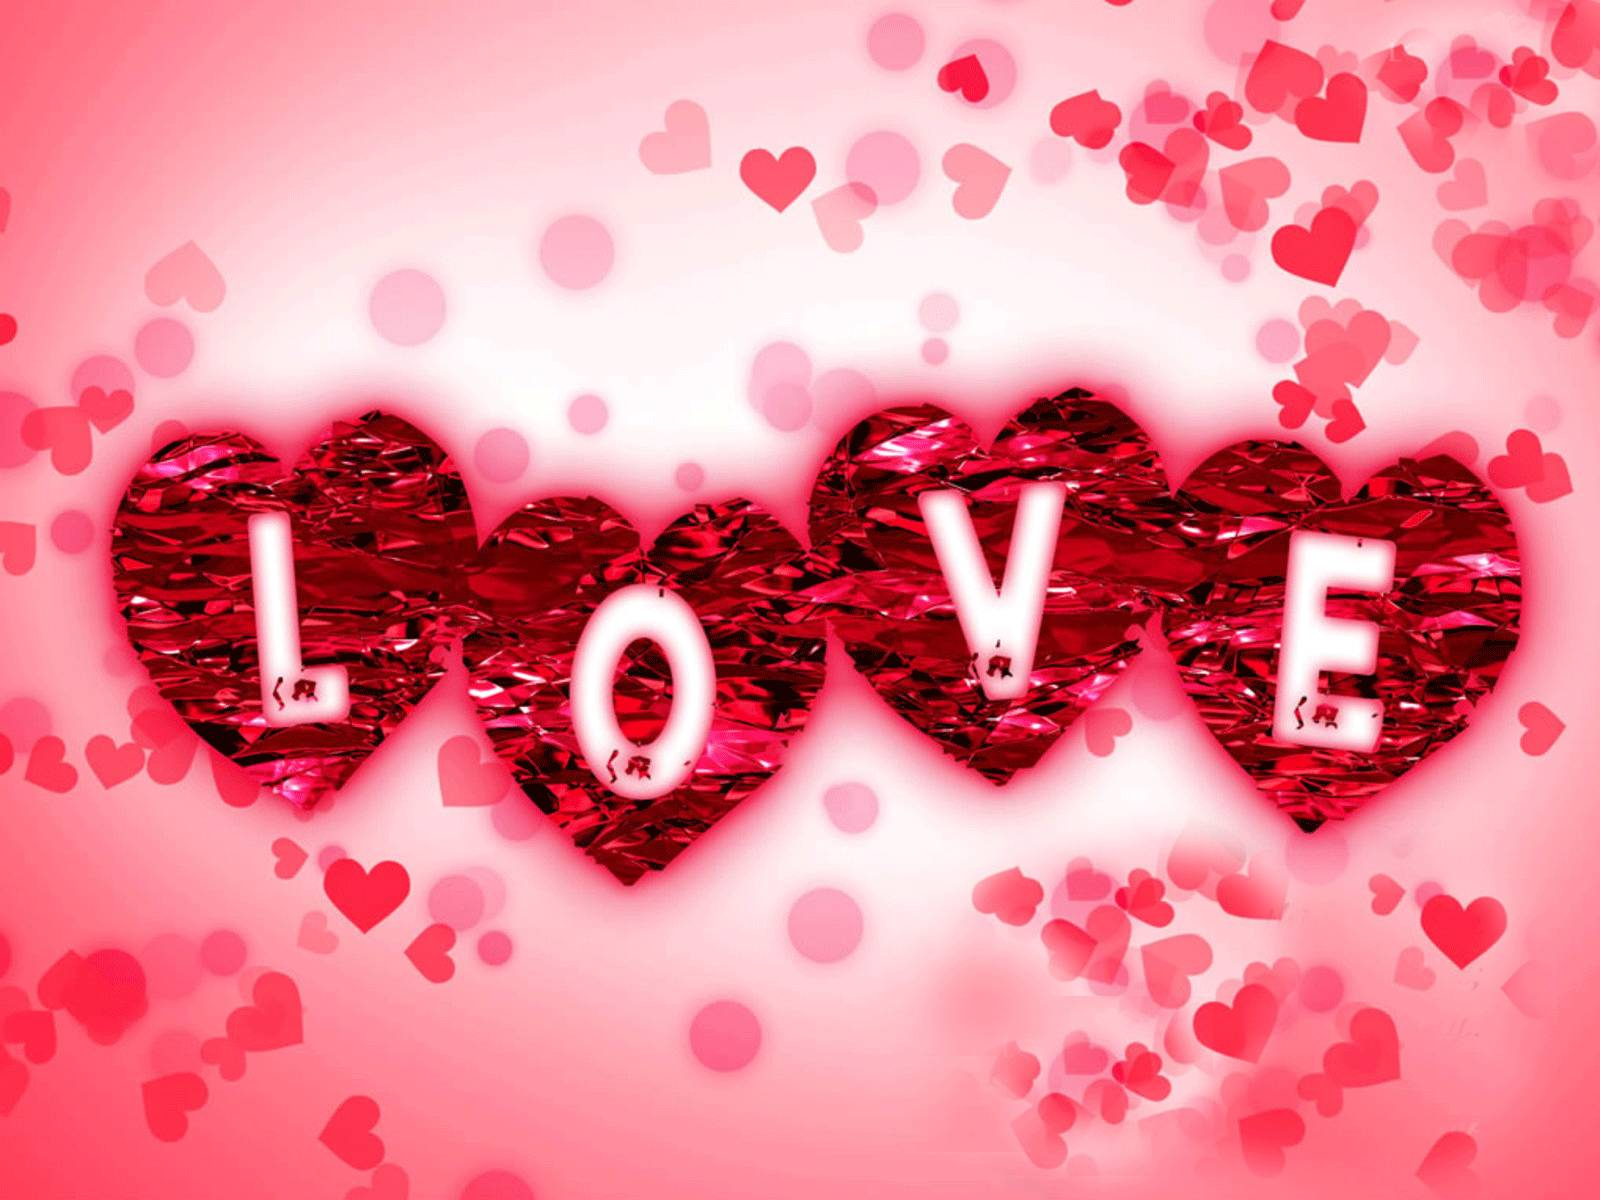 Cute Love Wallpaper Free Download